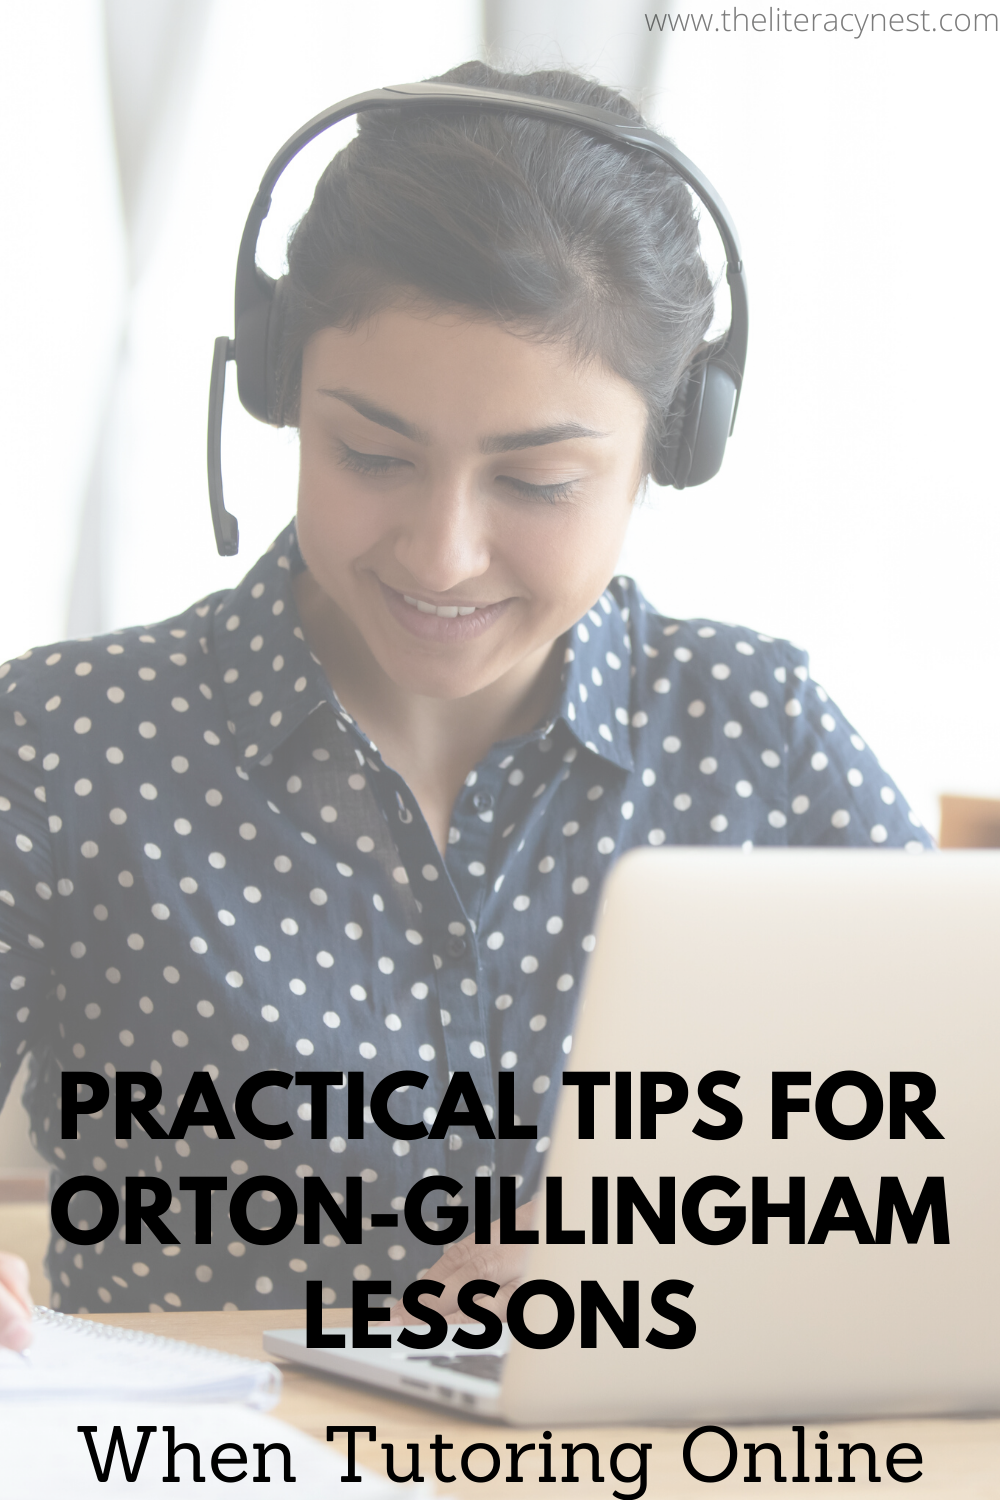 Online Tutoring with Orton-Gillingham lessons for distance learning